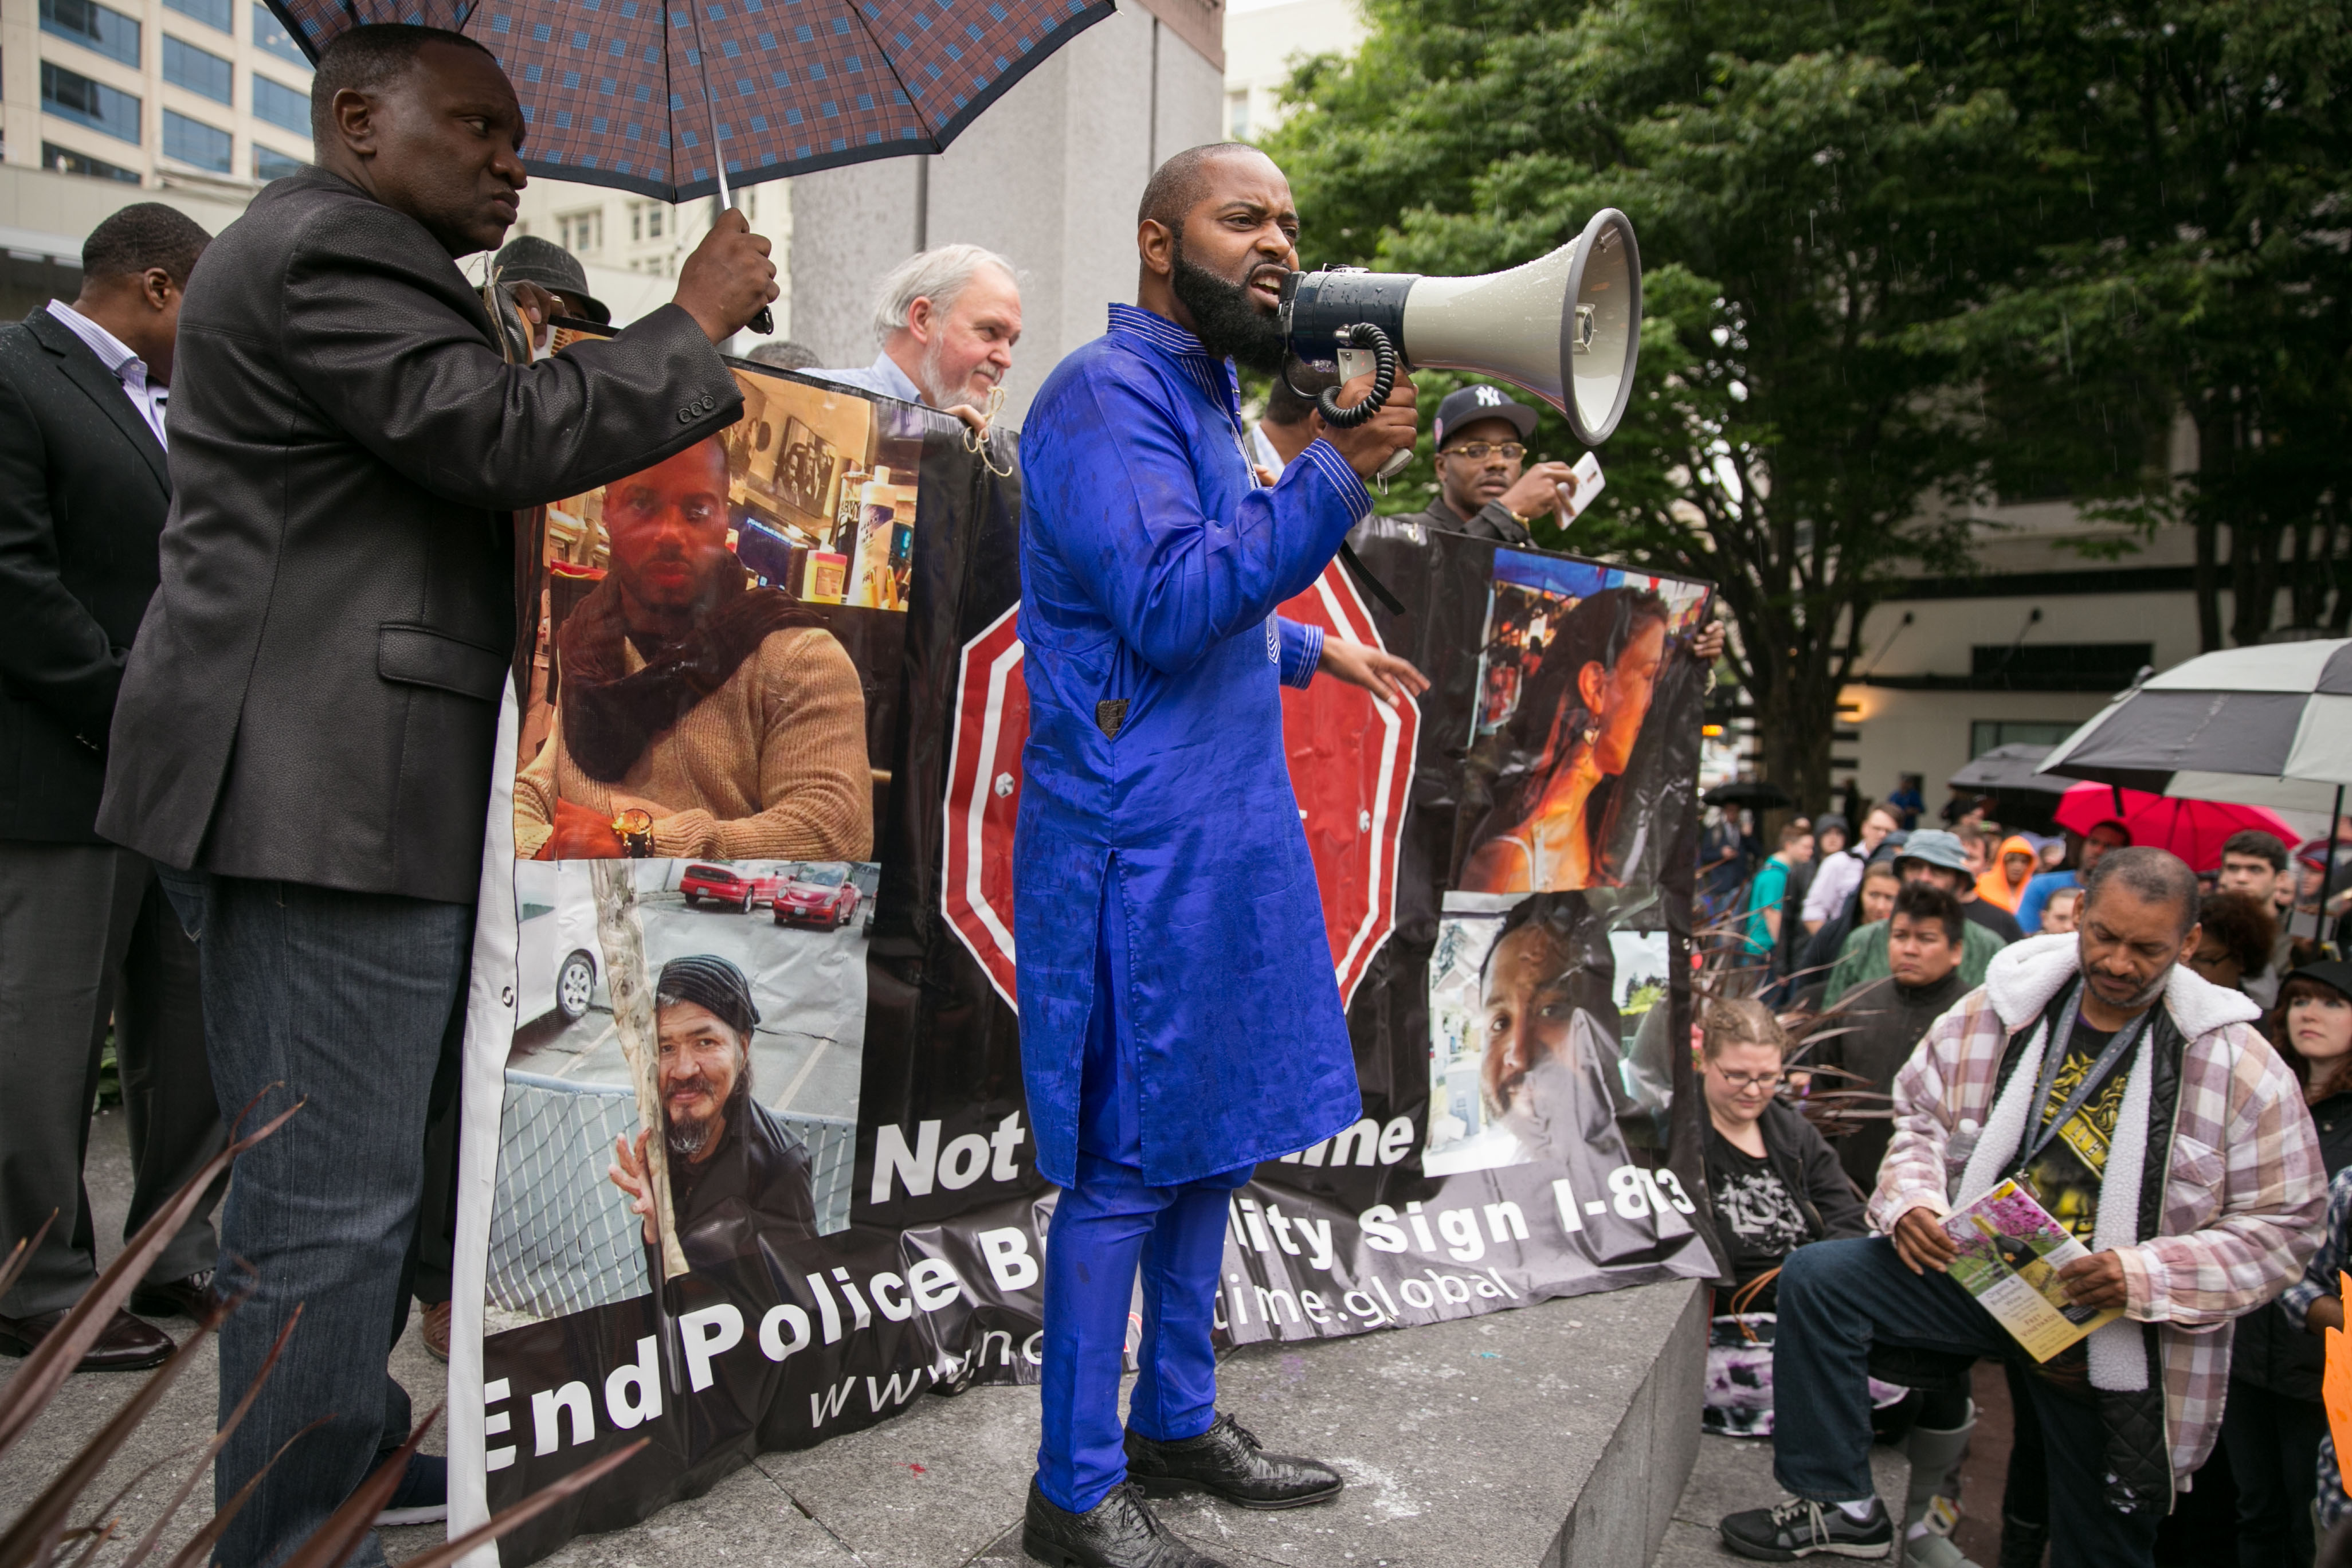 Police killed his brother. Andre Taylor wants to change ...